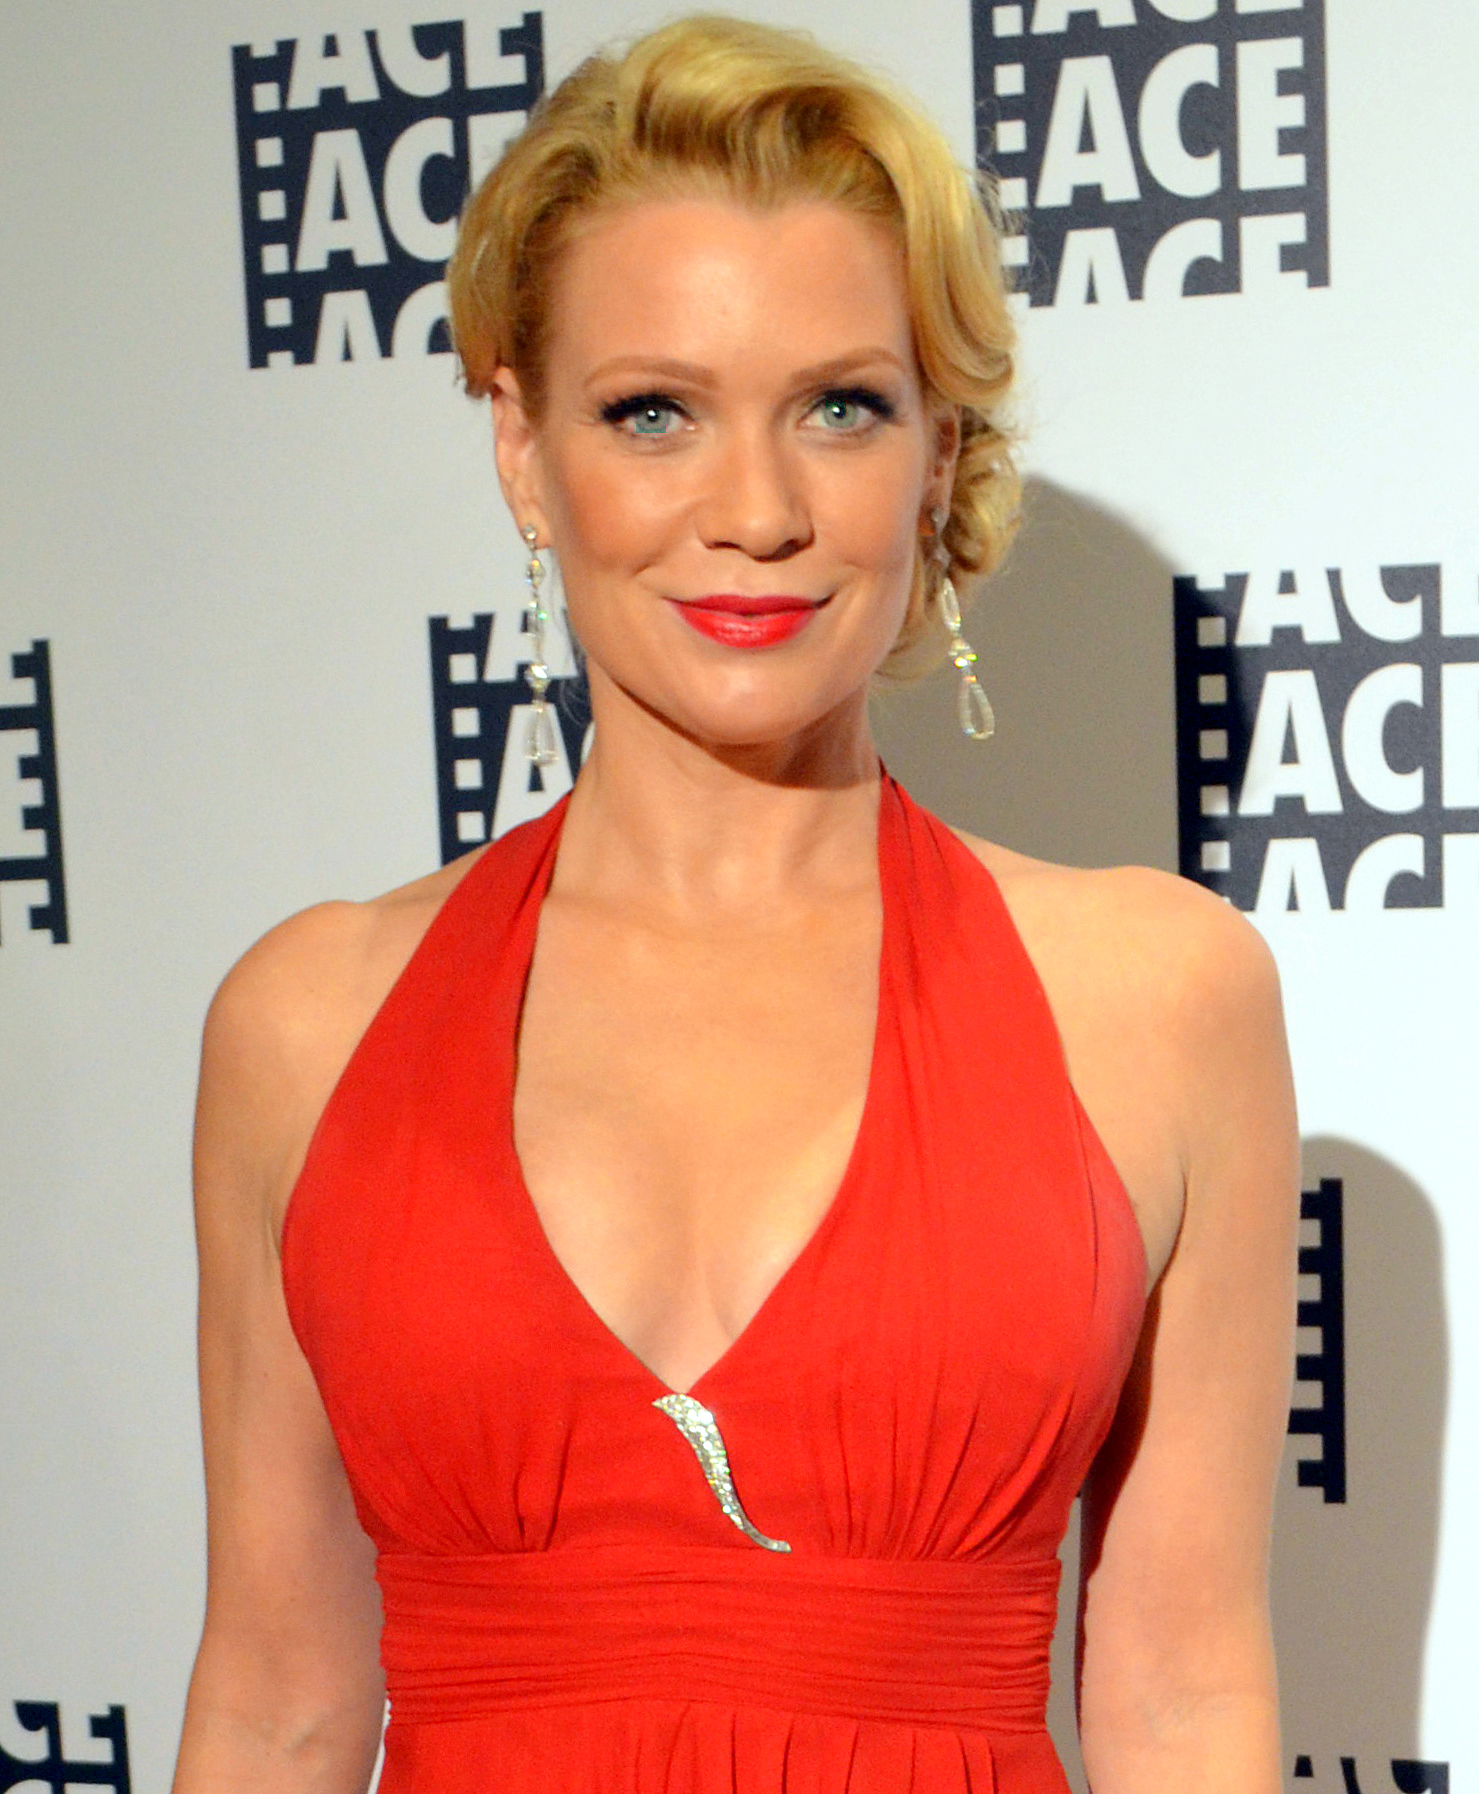 Cleavage Laurie Holden naked (12 photos), Ass, Hot, Selfie, cleavage 2019